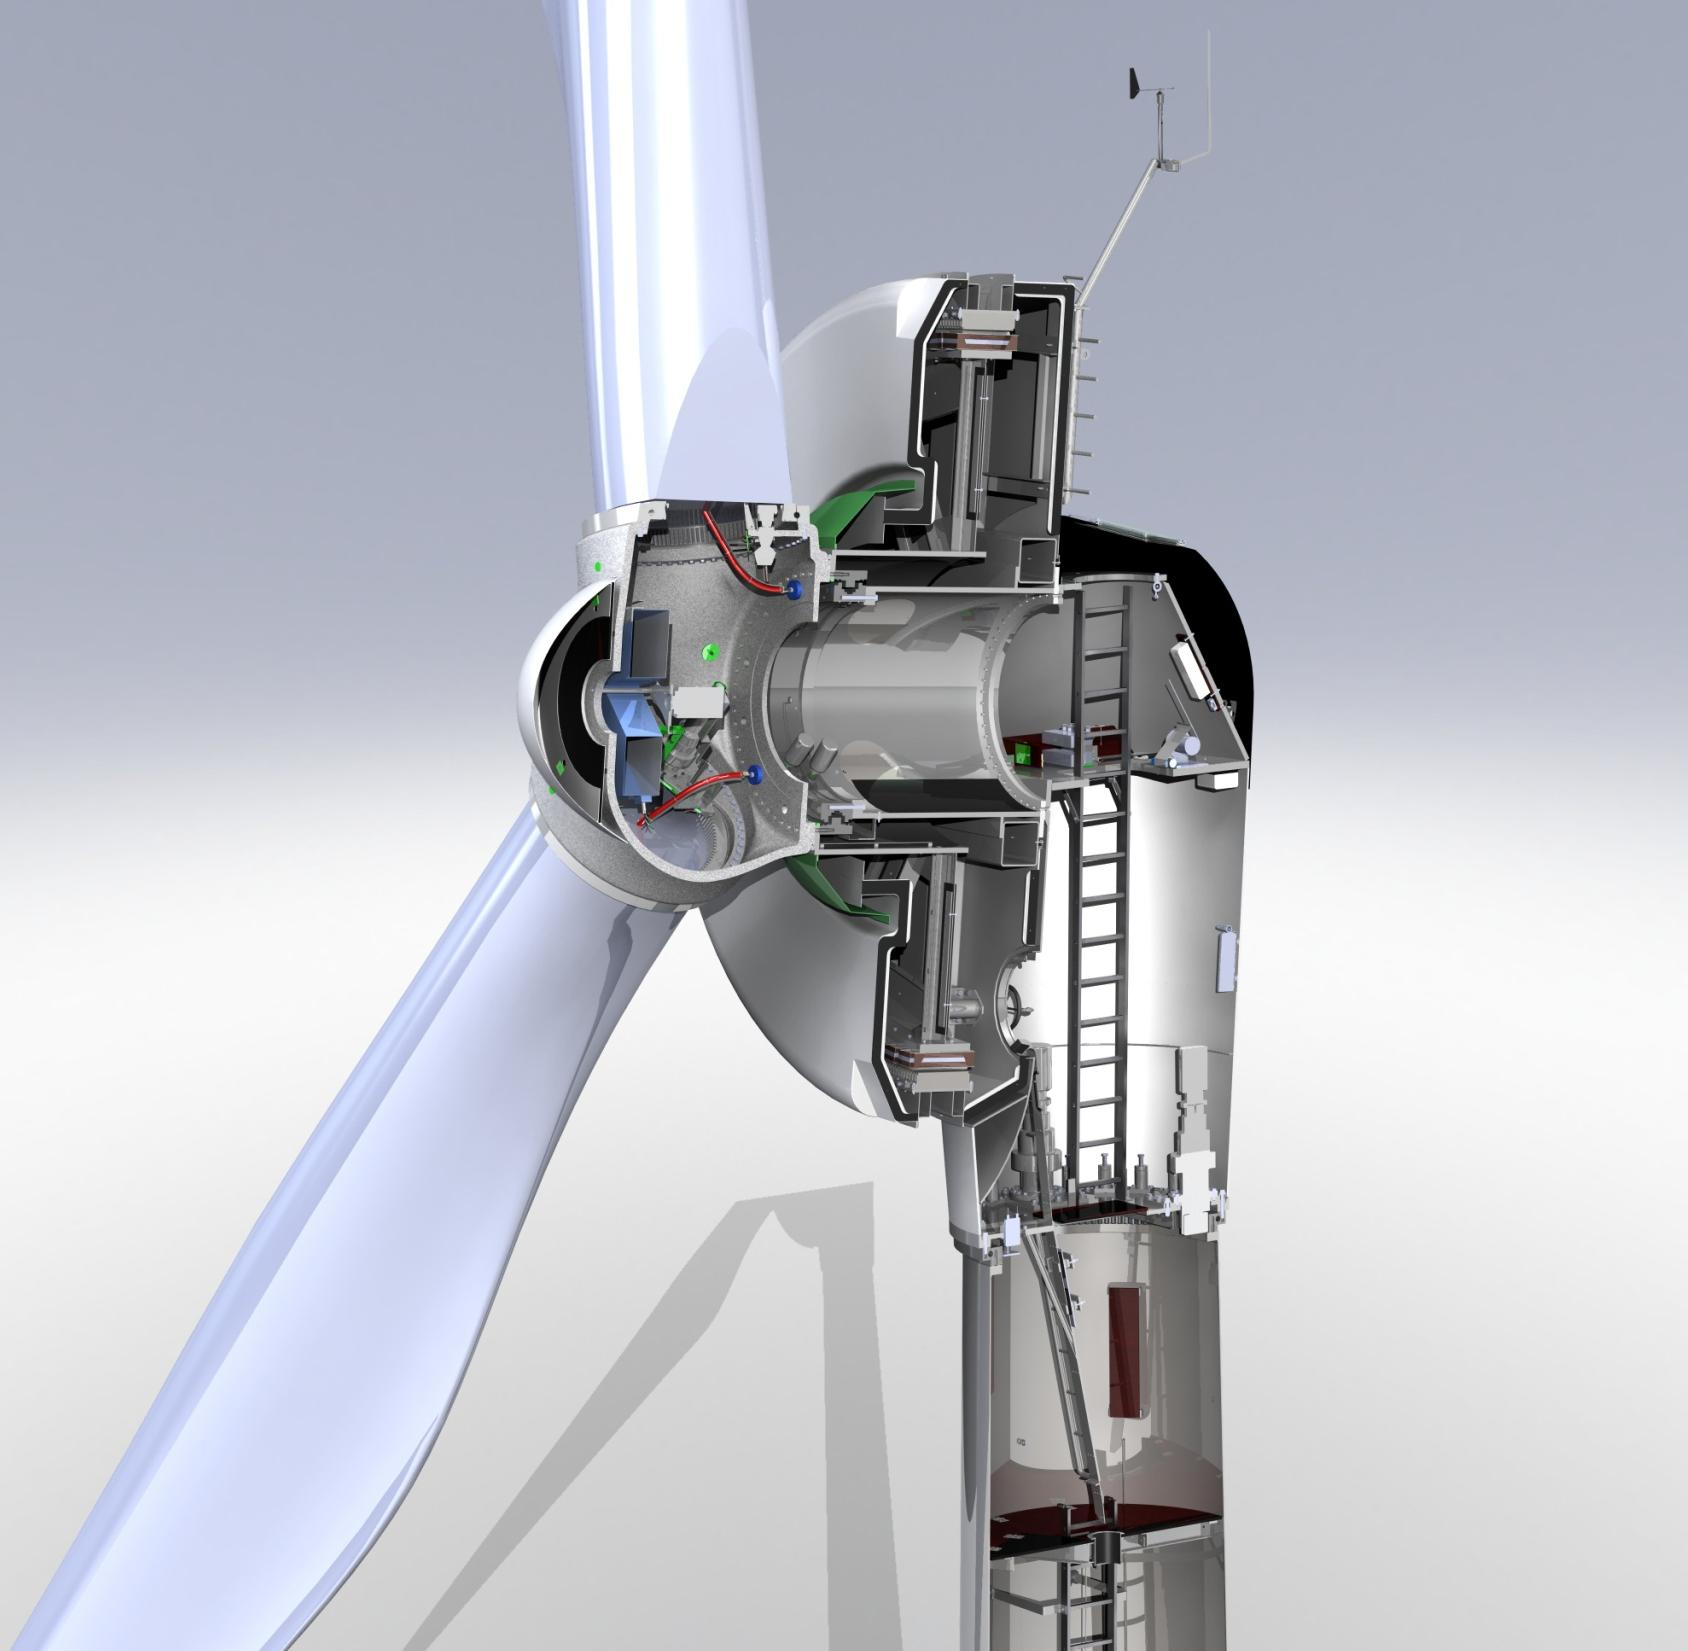 Category: Specification Revision: 02 Title: DIRECTWIND 52/54*900 Technical Specification Page 11 / 11 Doc code: S-1000920 APPENDIX 1: 3D image of main turbine components Copyright Emergya Wind